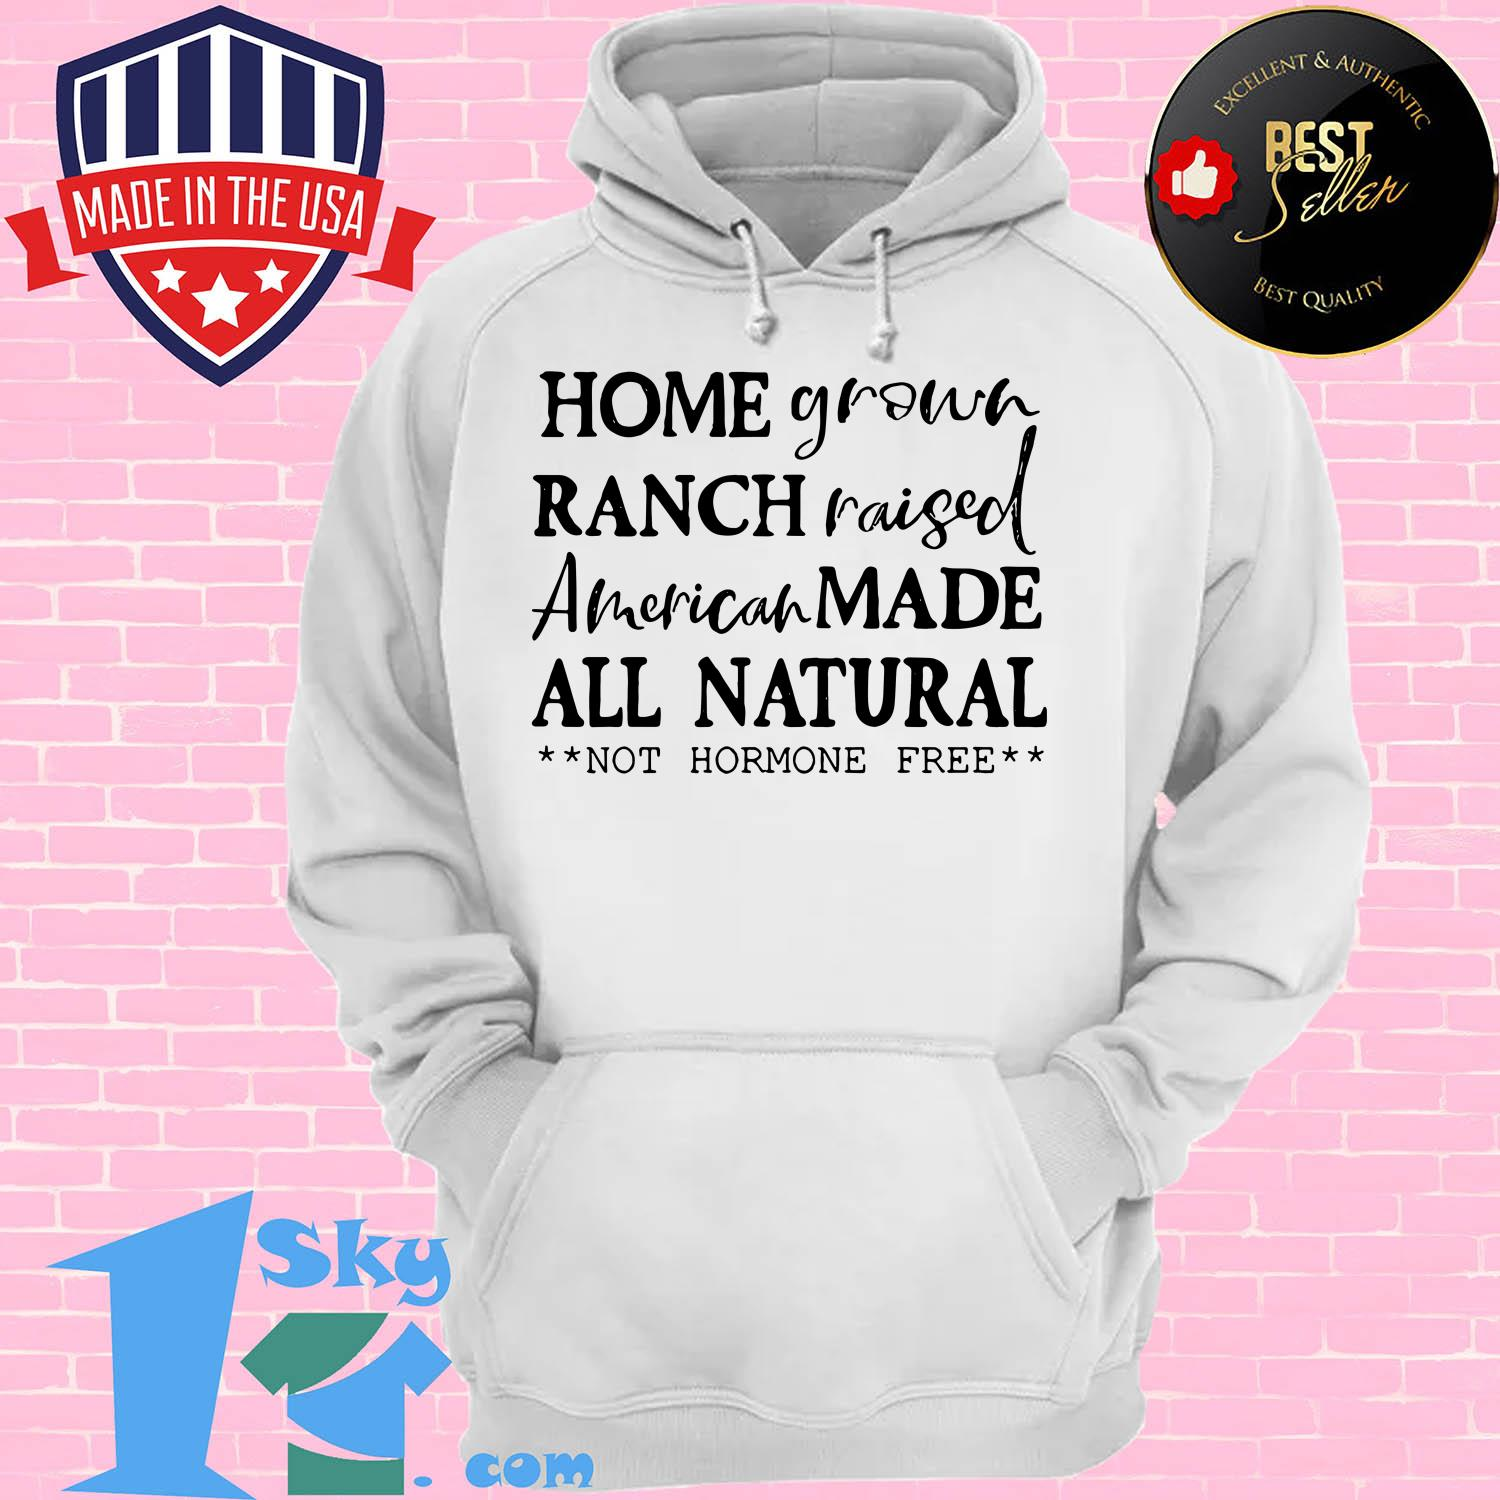 homegrown ranch raised american made all natural not hormone free hoodie - Homegrown Ranch raised American made All Natural not Hormone free shirt